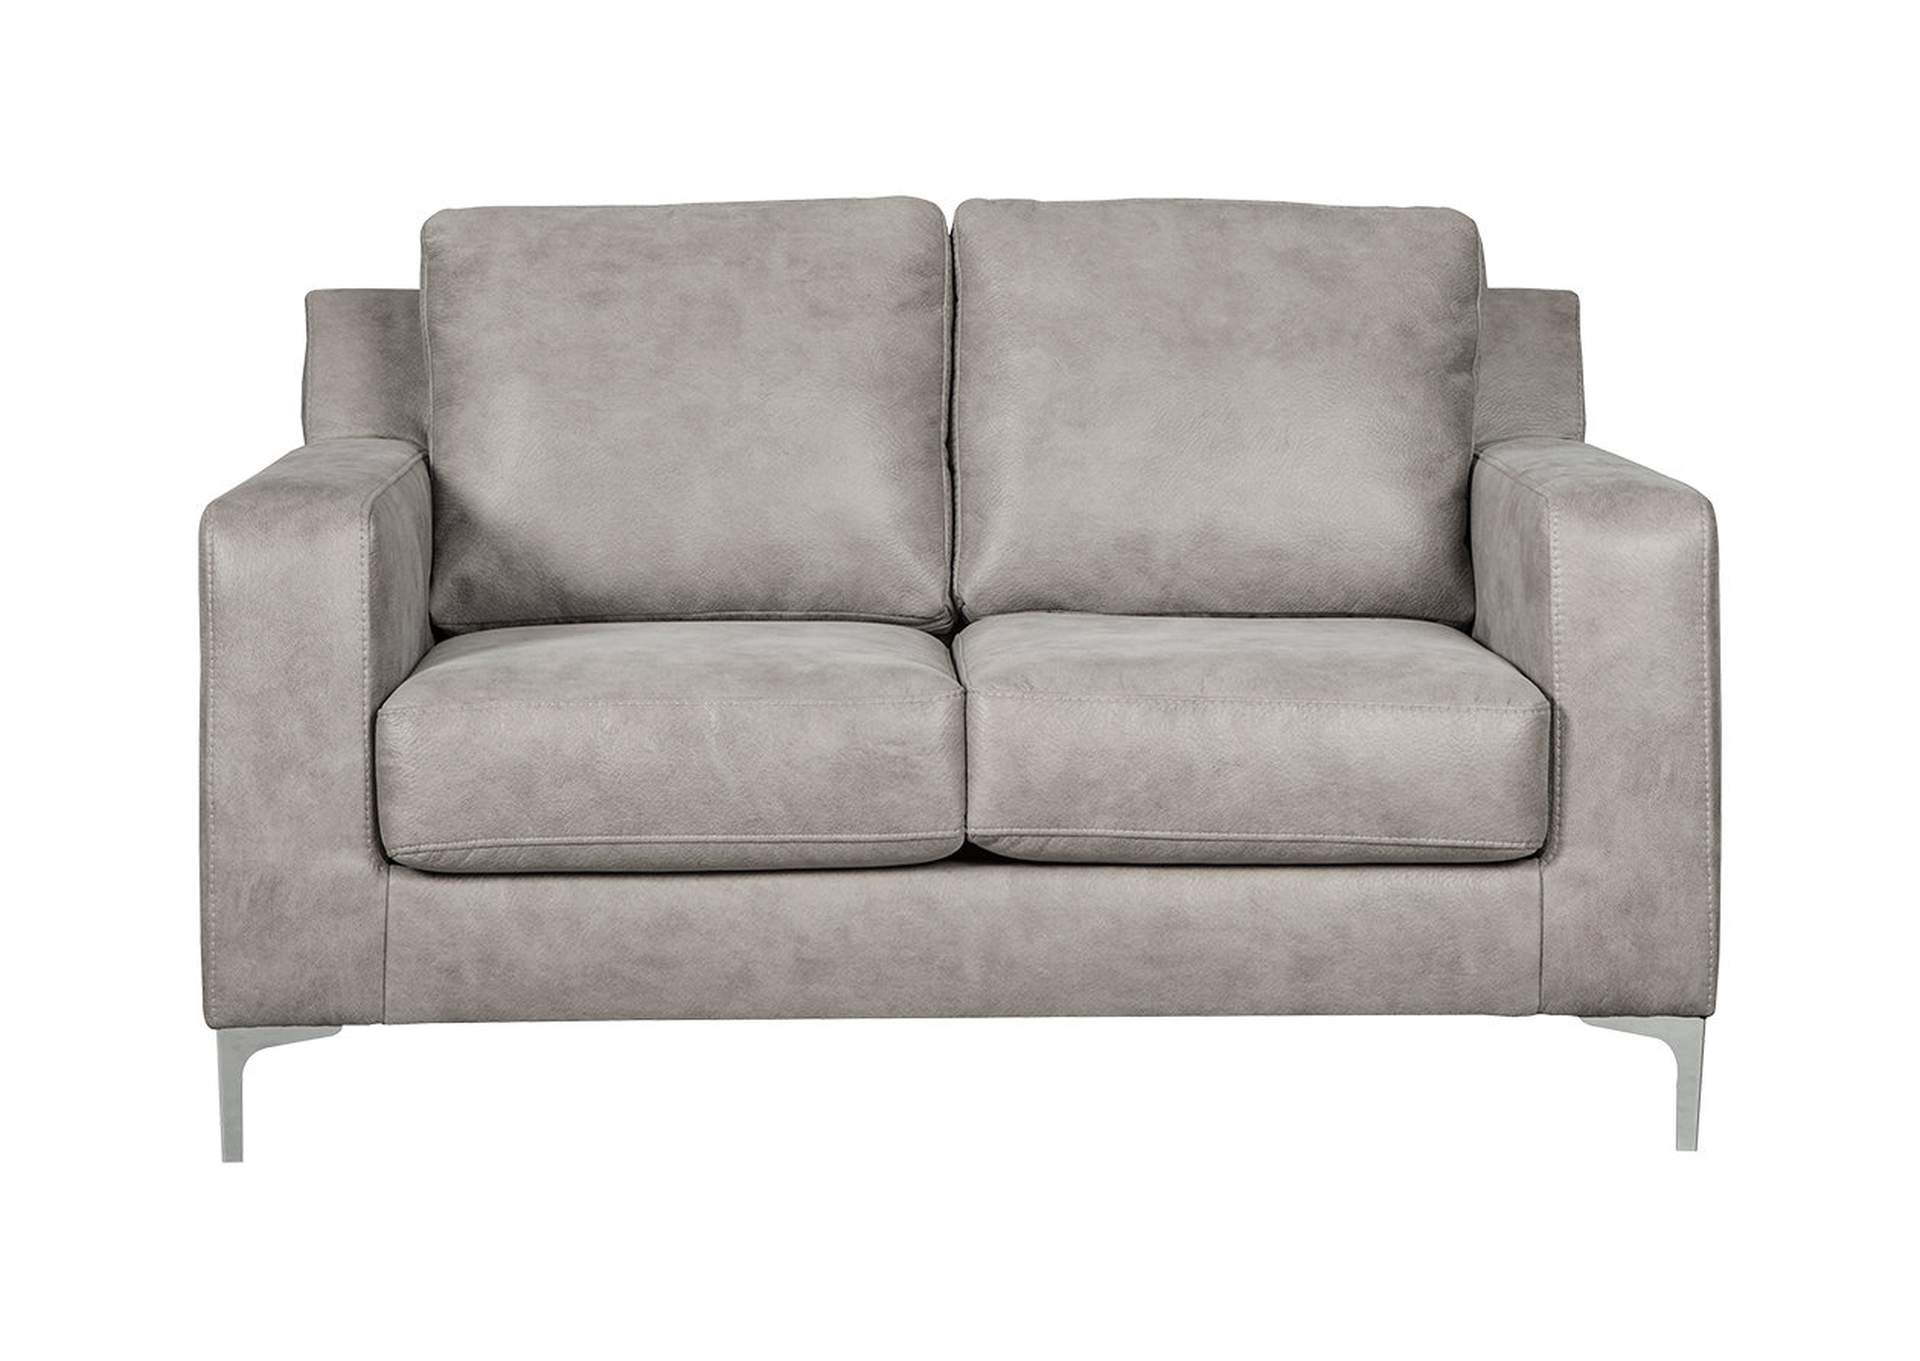 Ryler Steel Loveseat,Signature Design By Ashley